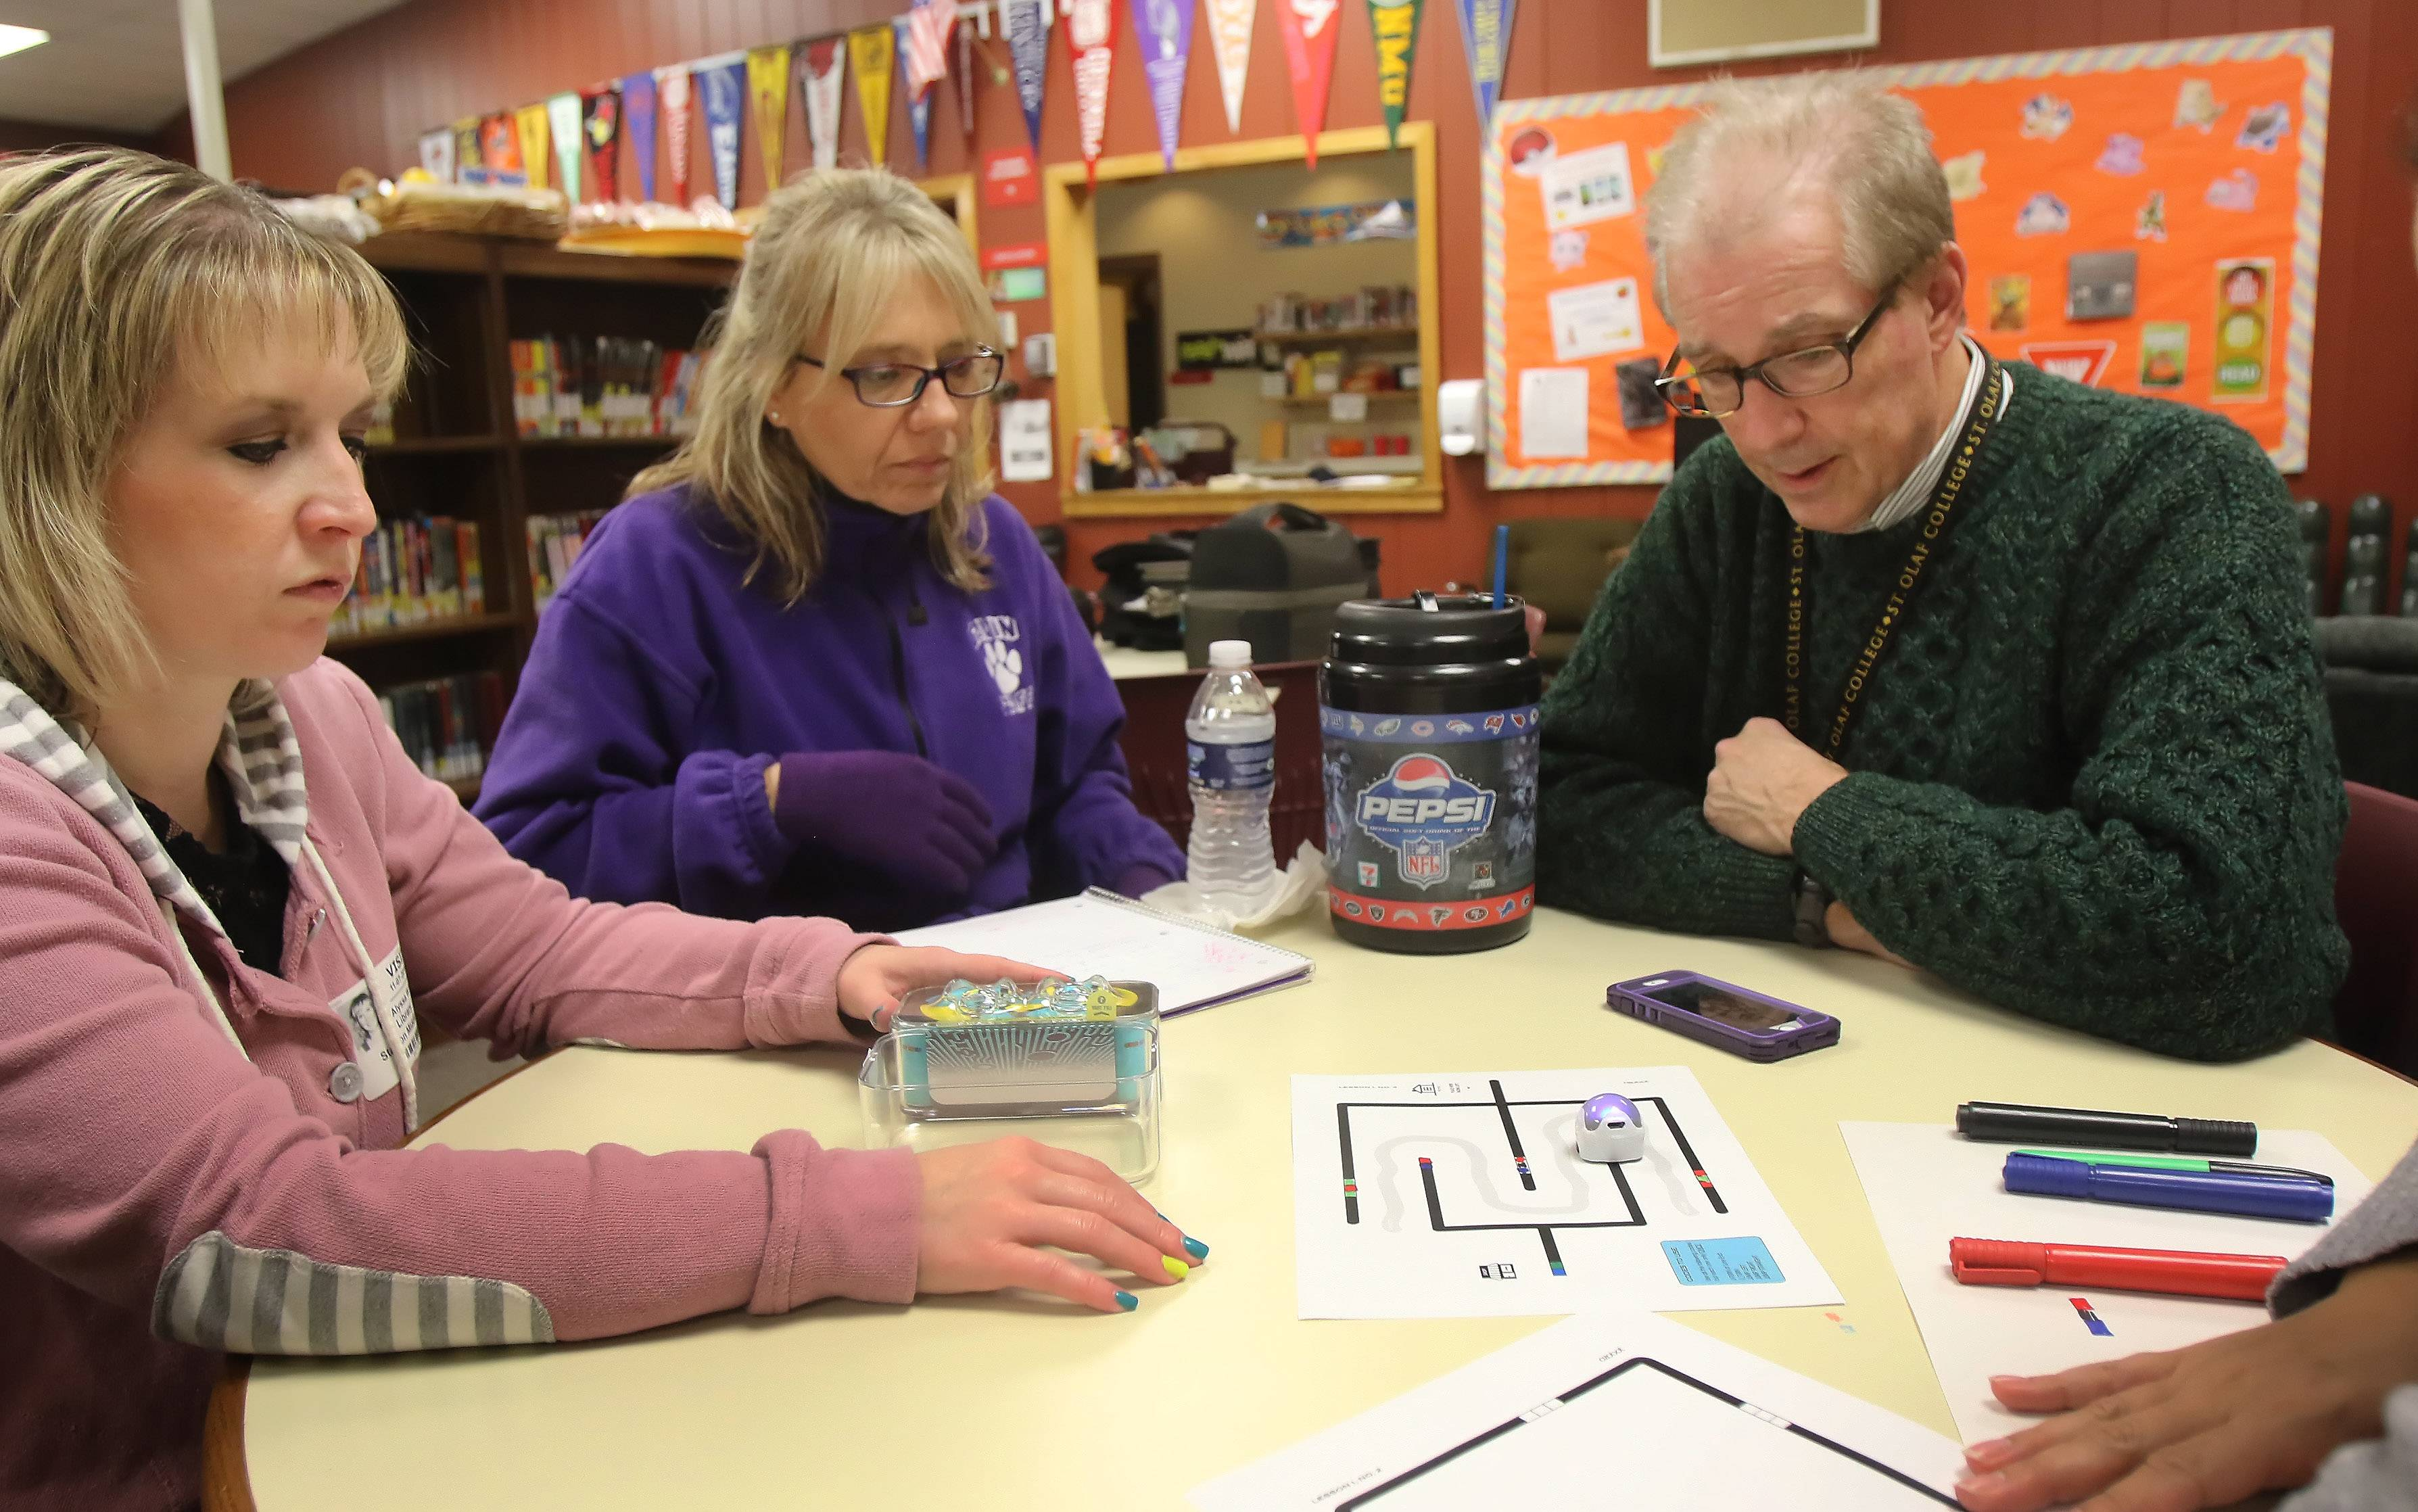 Teachers Alyssa Kay of Stanton School, left, Joanne Maher and Tom Gallagher of Gavin South Middle School work with an Ozobot during a STEM workshop for teachers Monday at Stanton Elementary School in Fox Lake. Kristin Brynteson of Northern Illinois University's STEM program instructed the teachers with hands on training and activities.